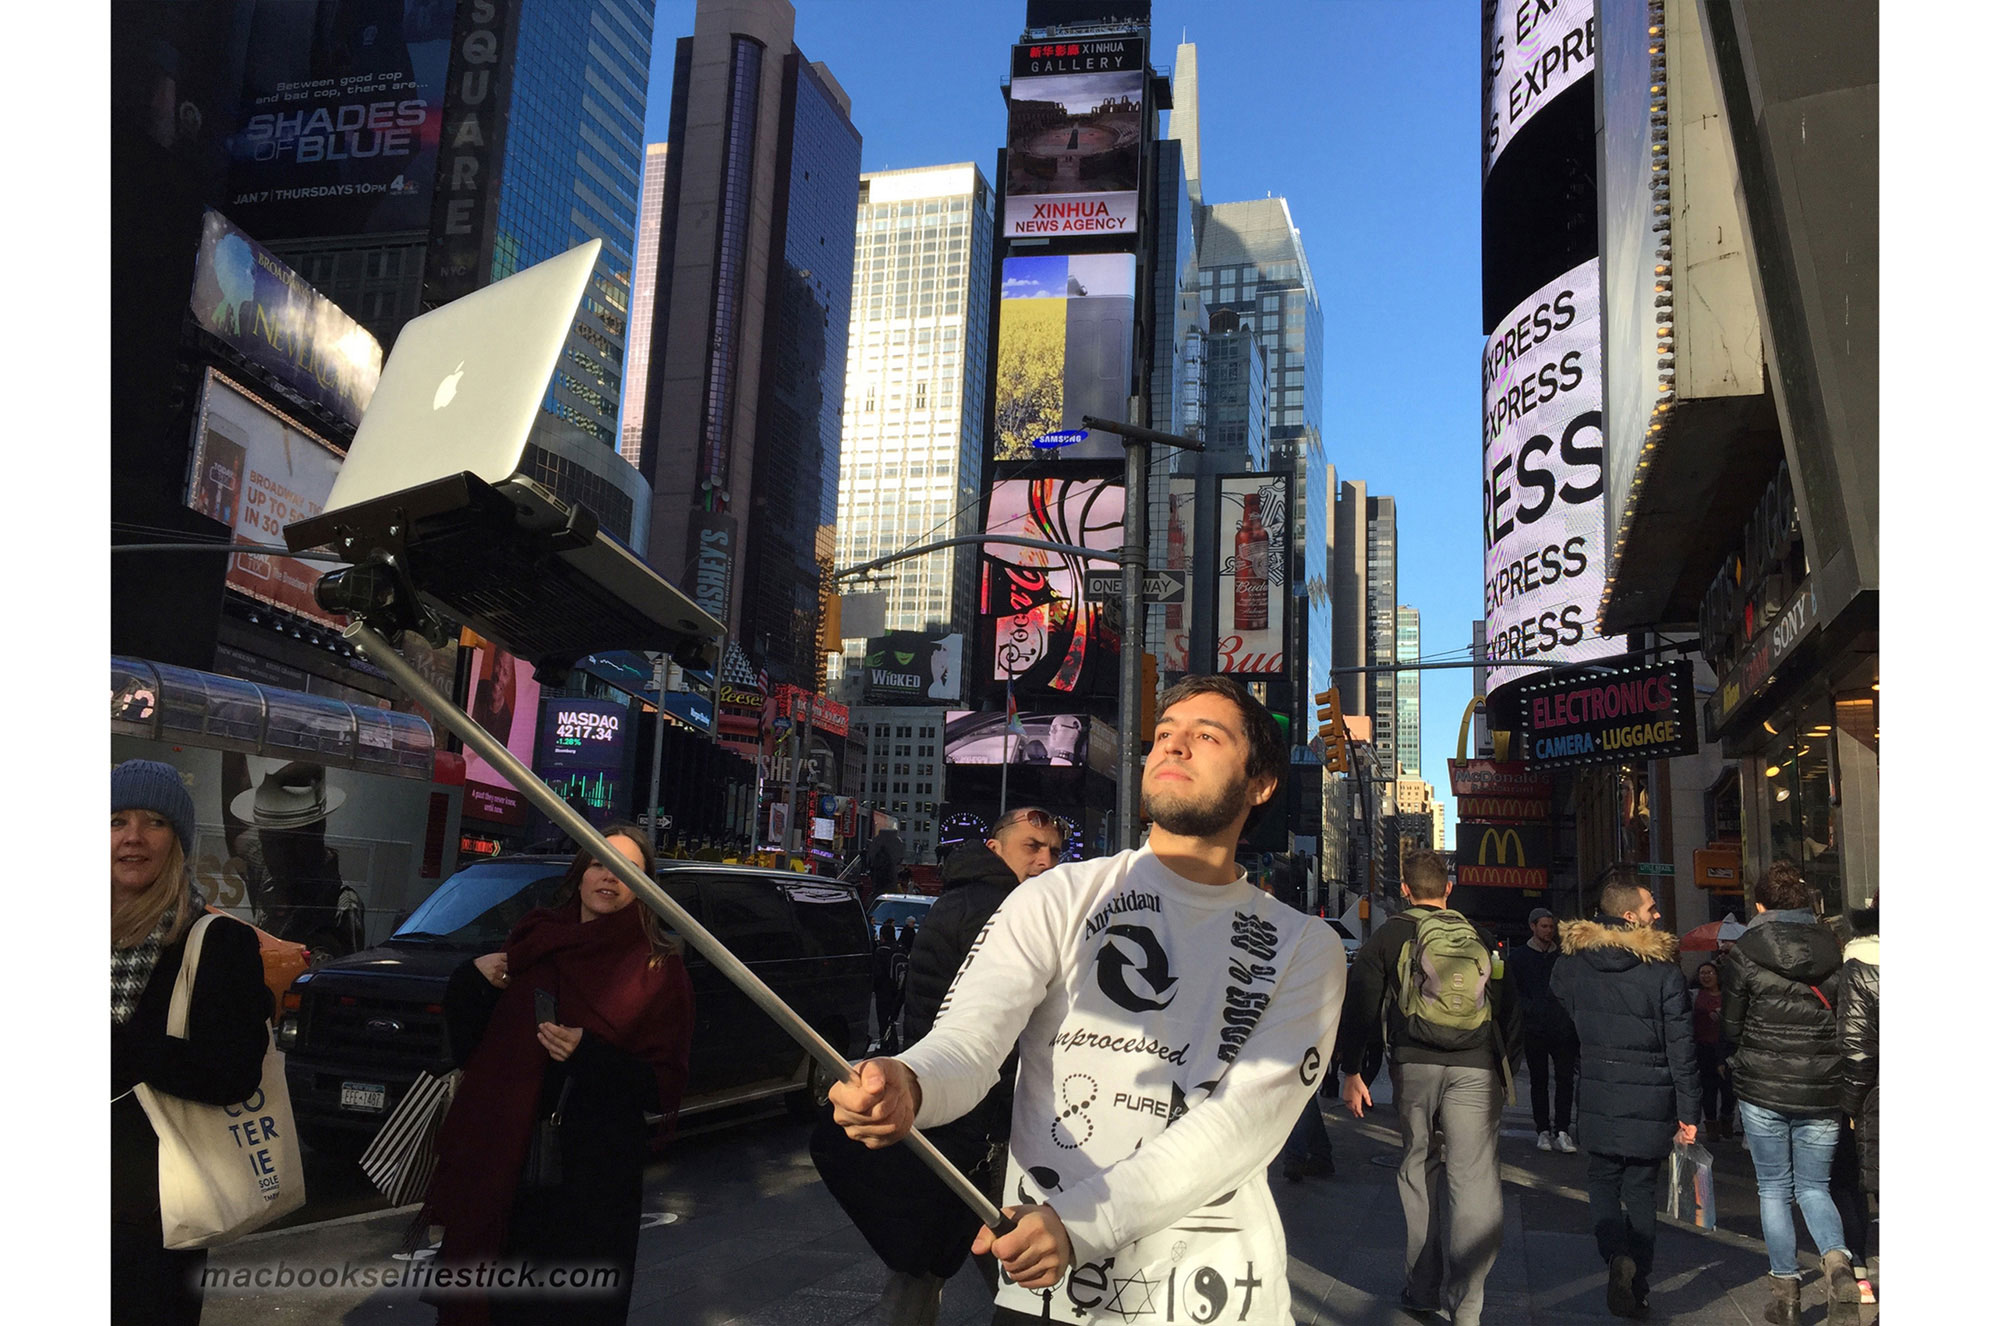 This Macbook selfie stick is a real thing we didn't seeing coming